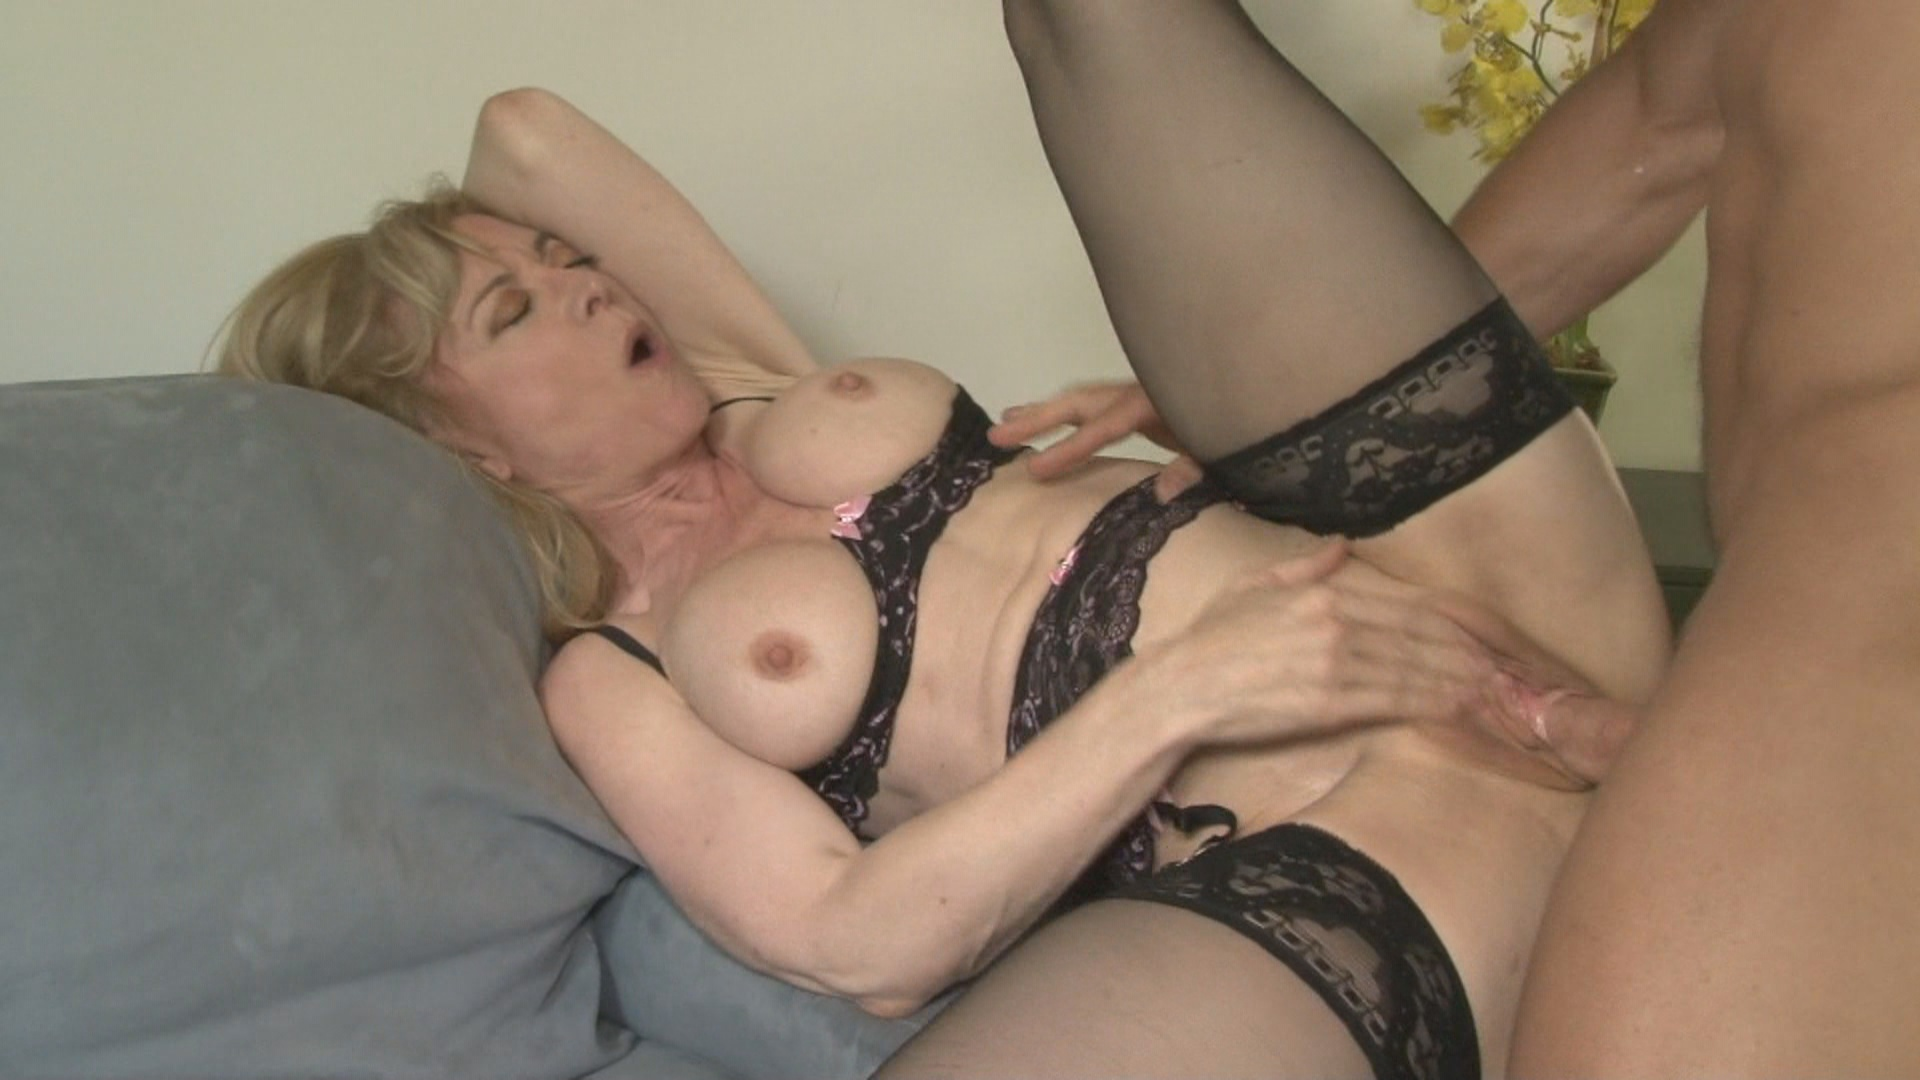 Nasty Grannies Xvideos